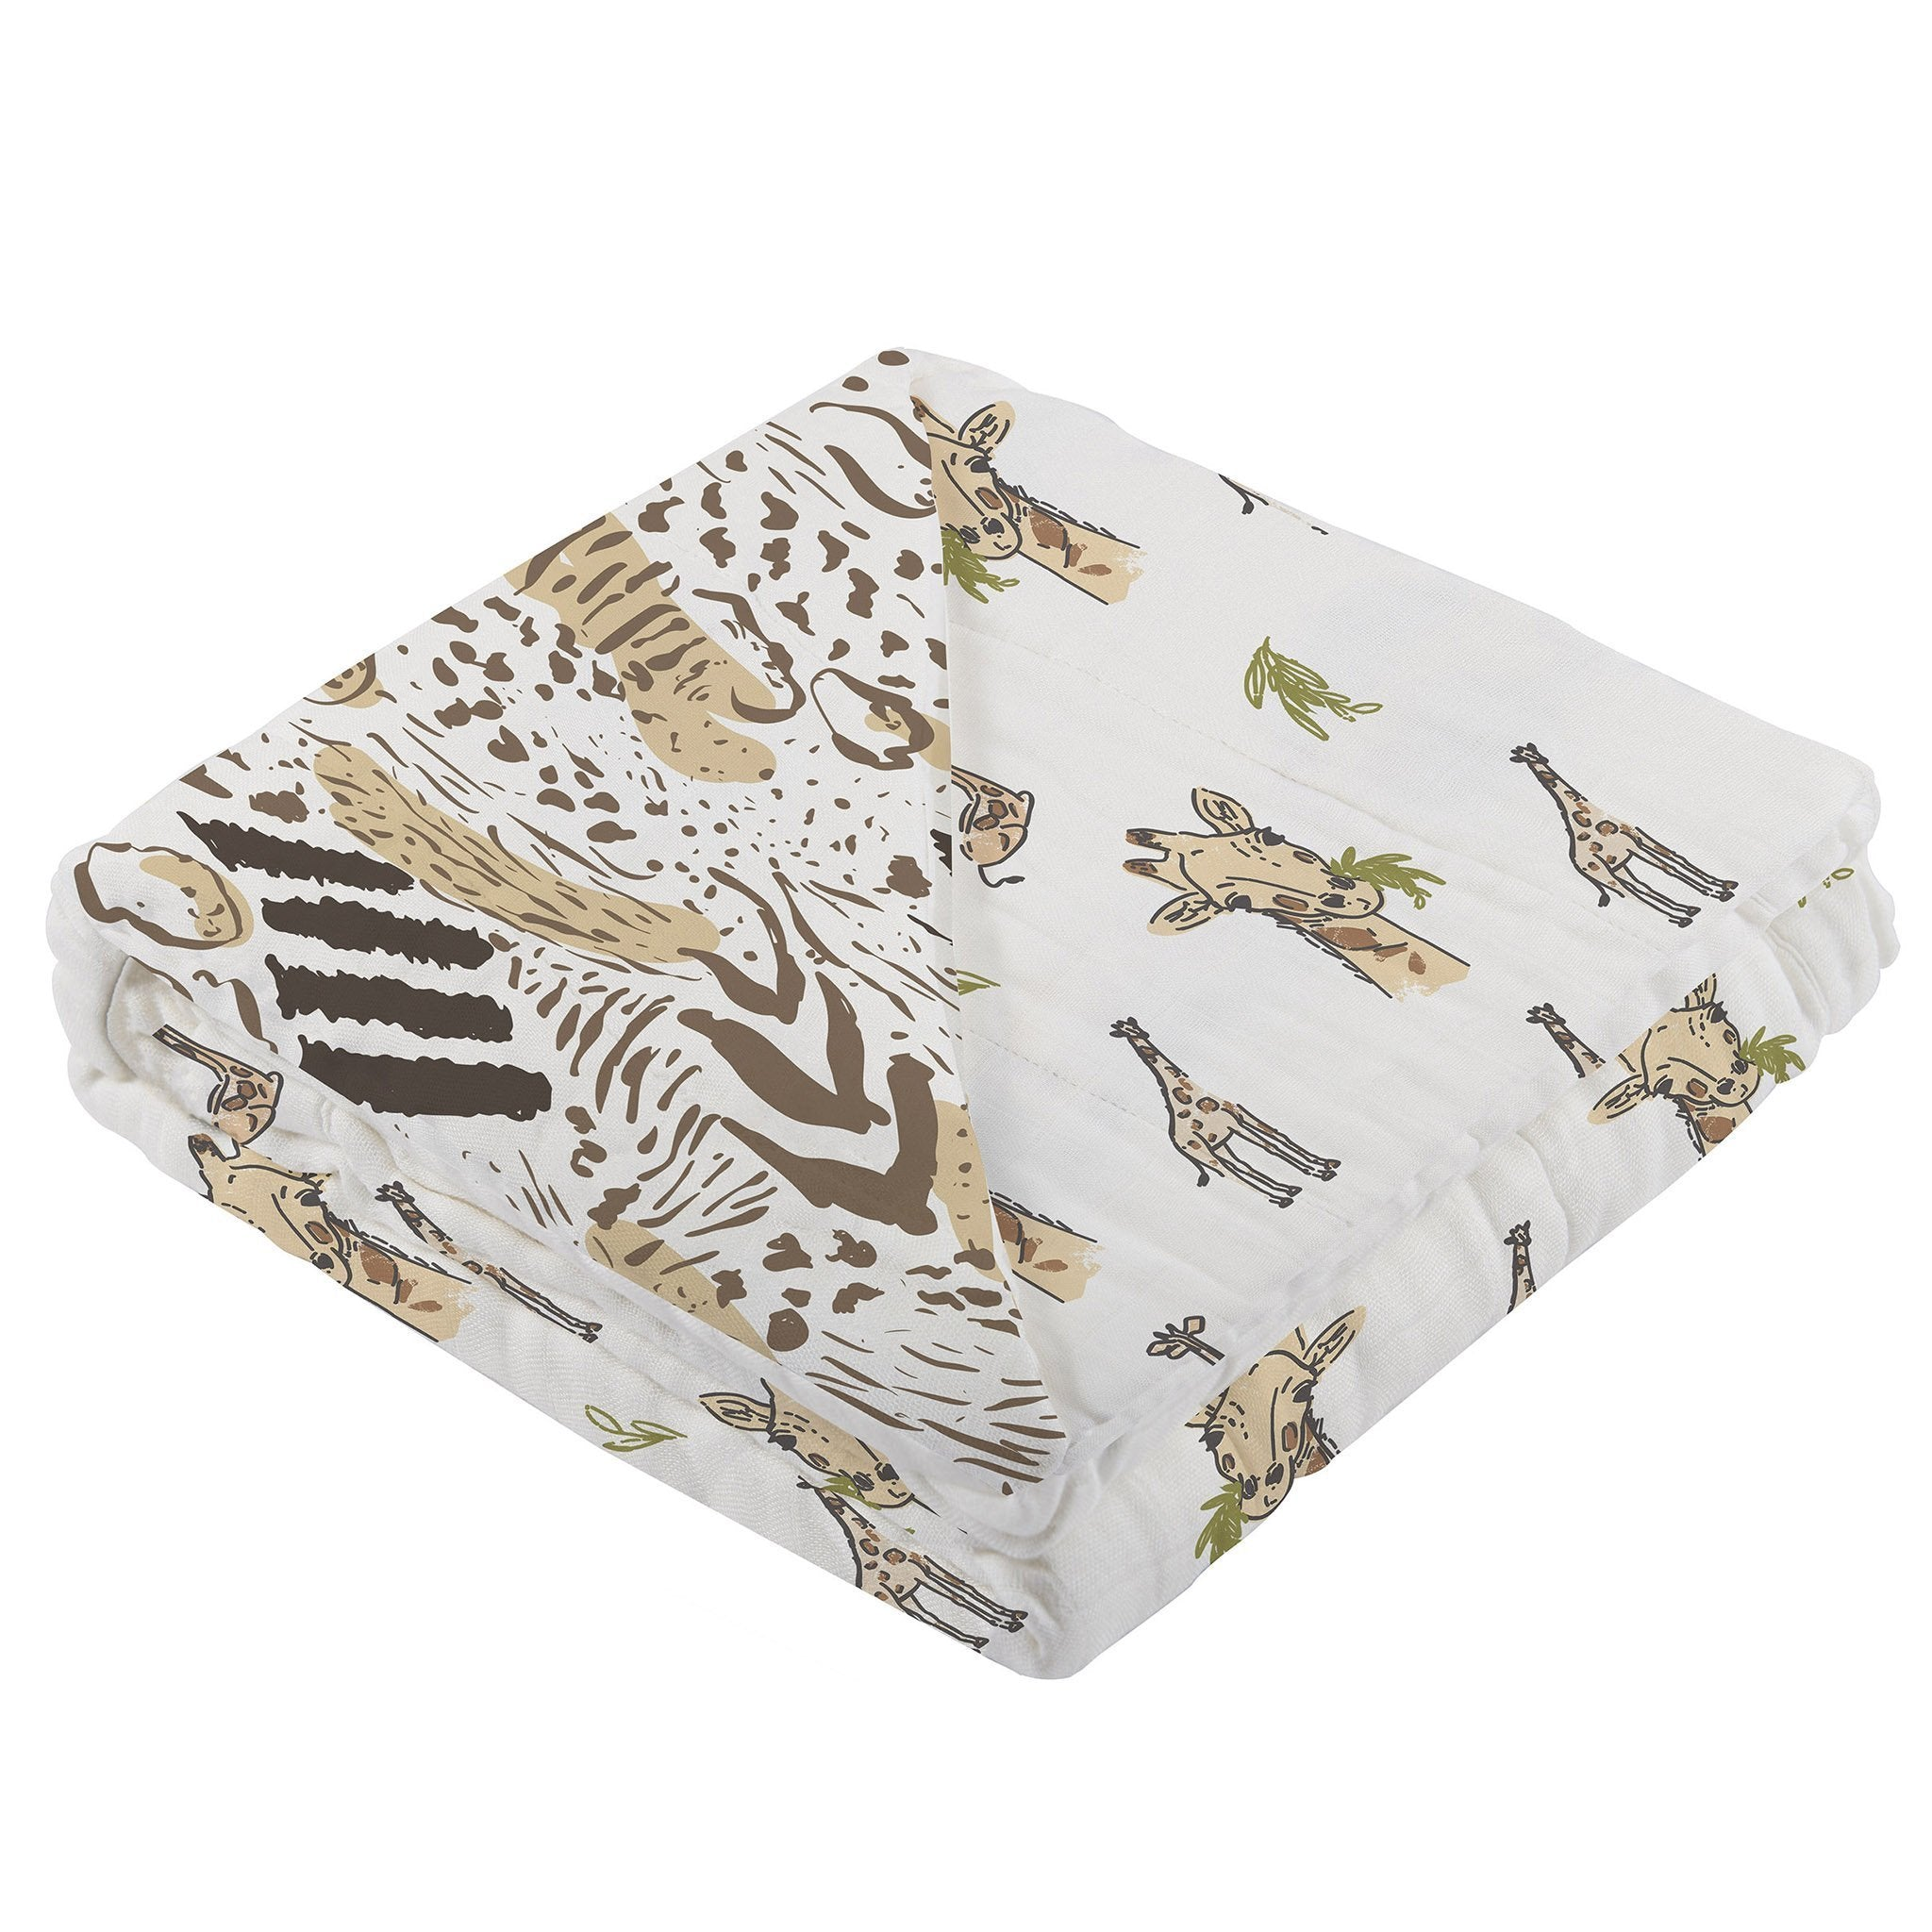 Hungry Giraffe & Animal Print Blanket